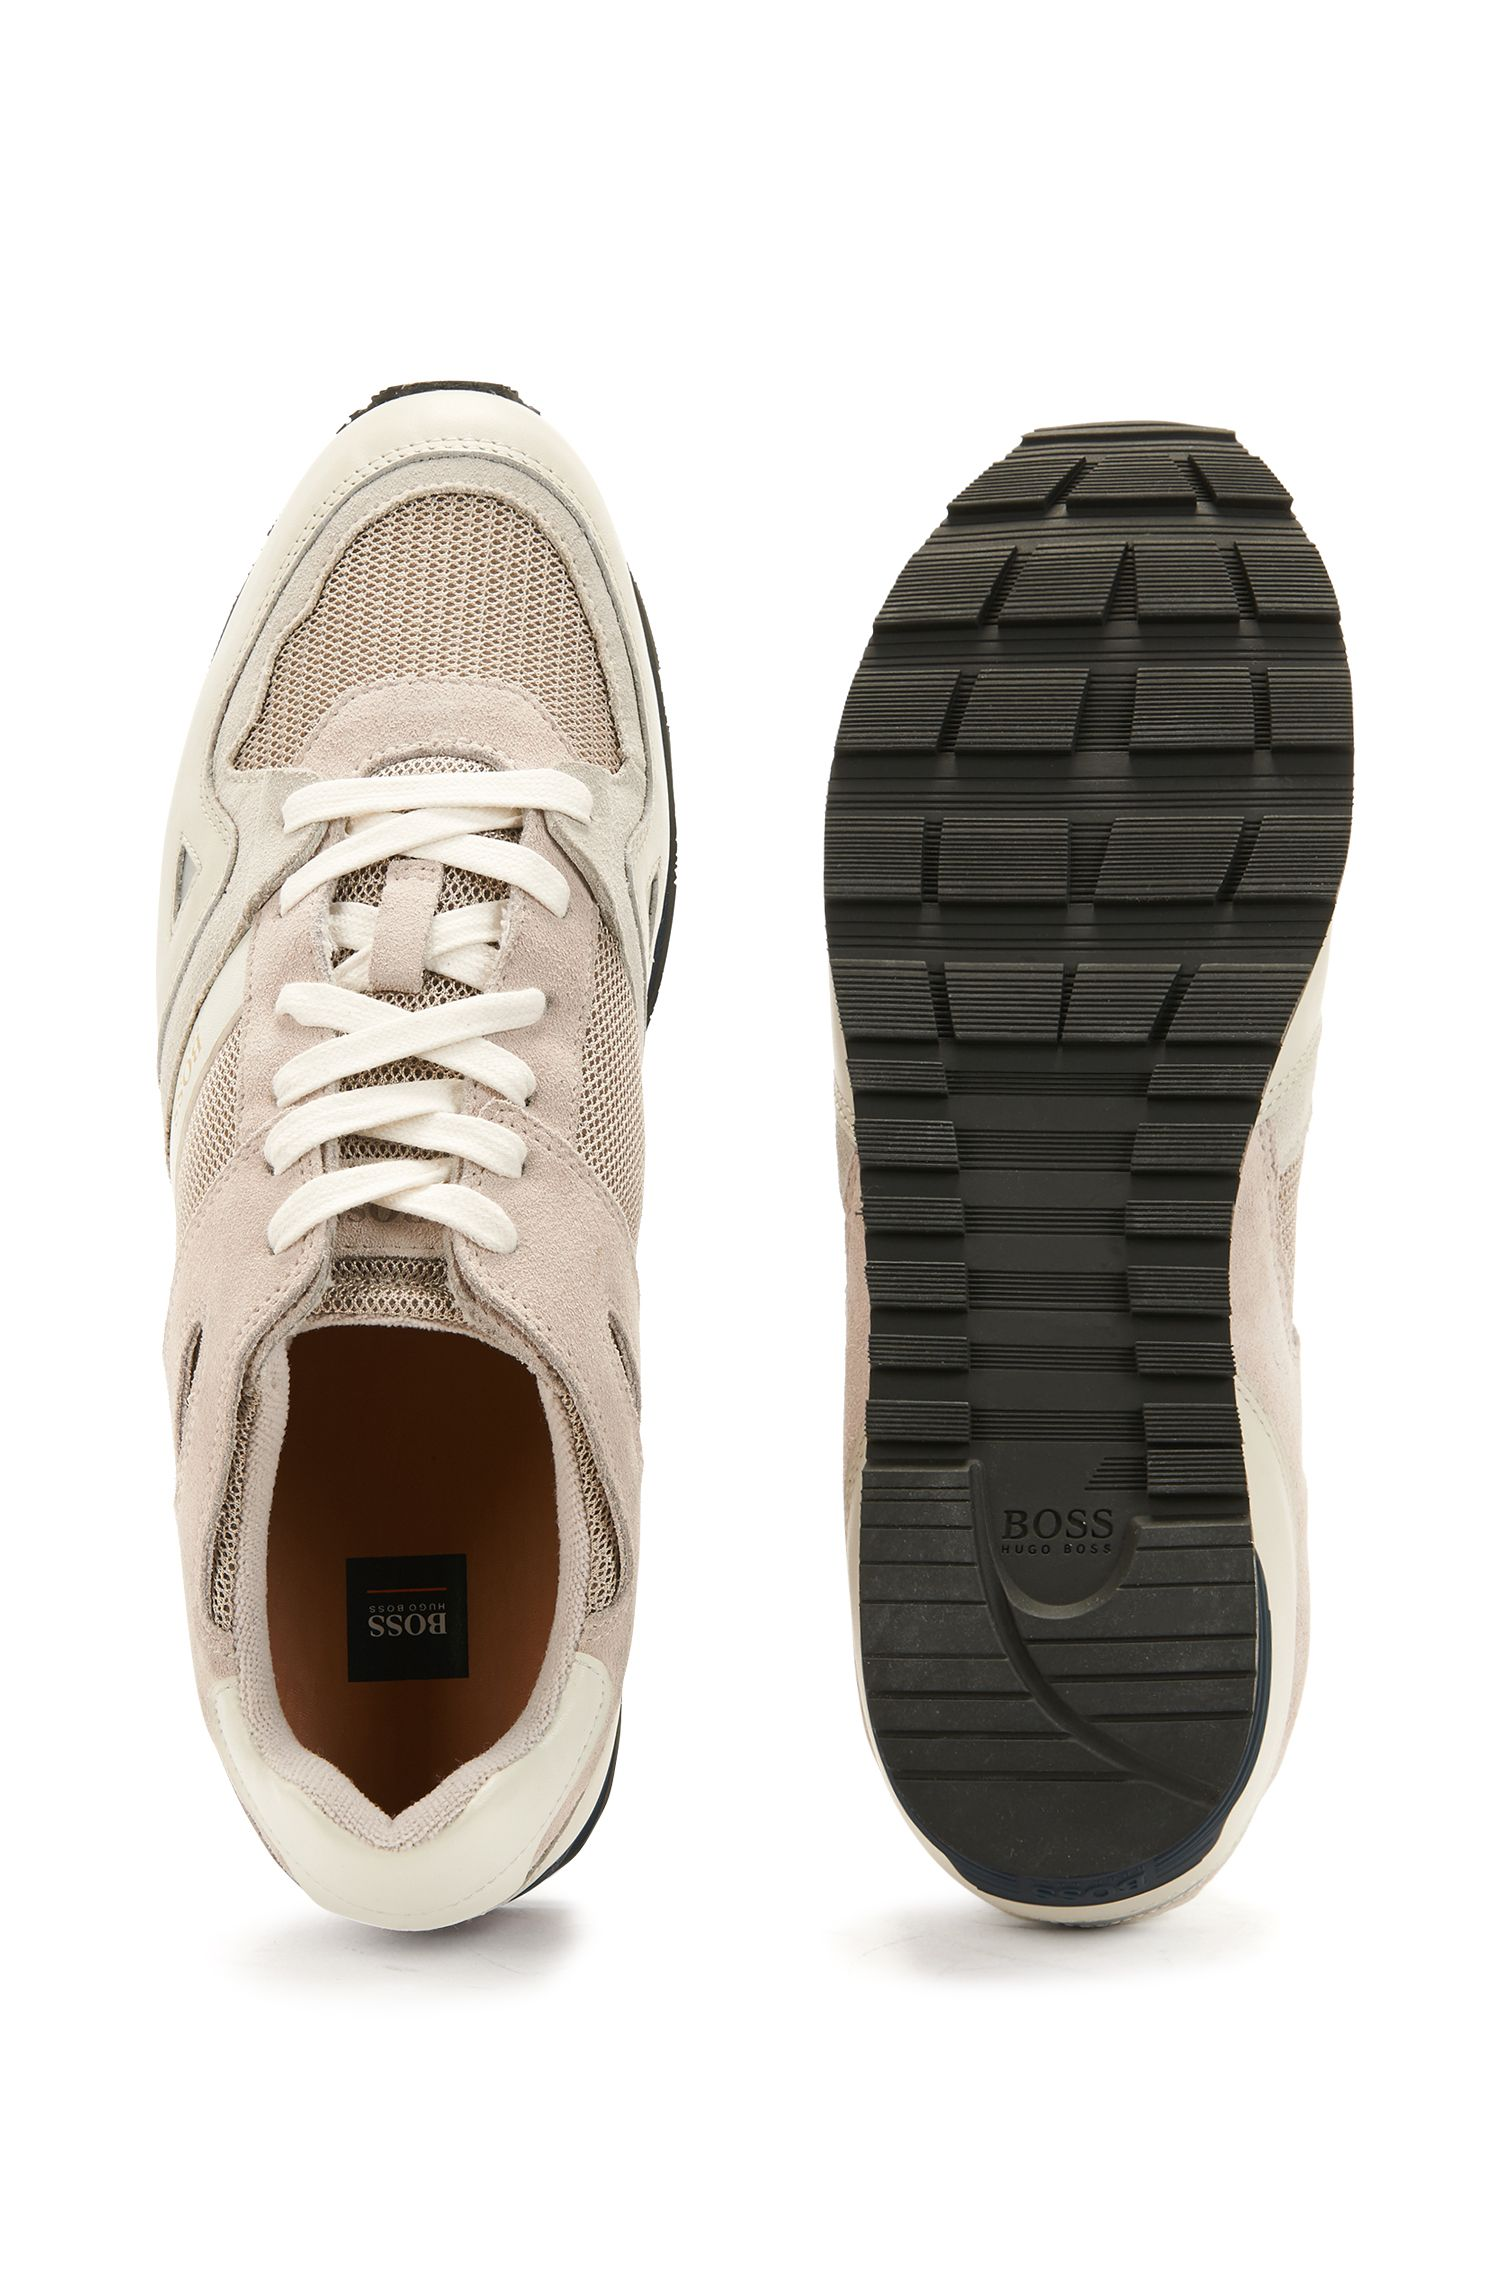 Lace-up trainers with leather overlays